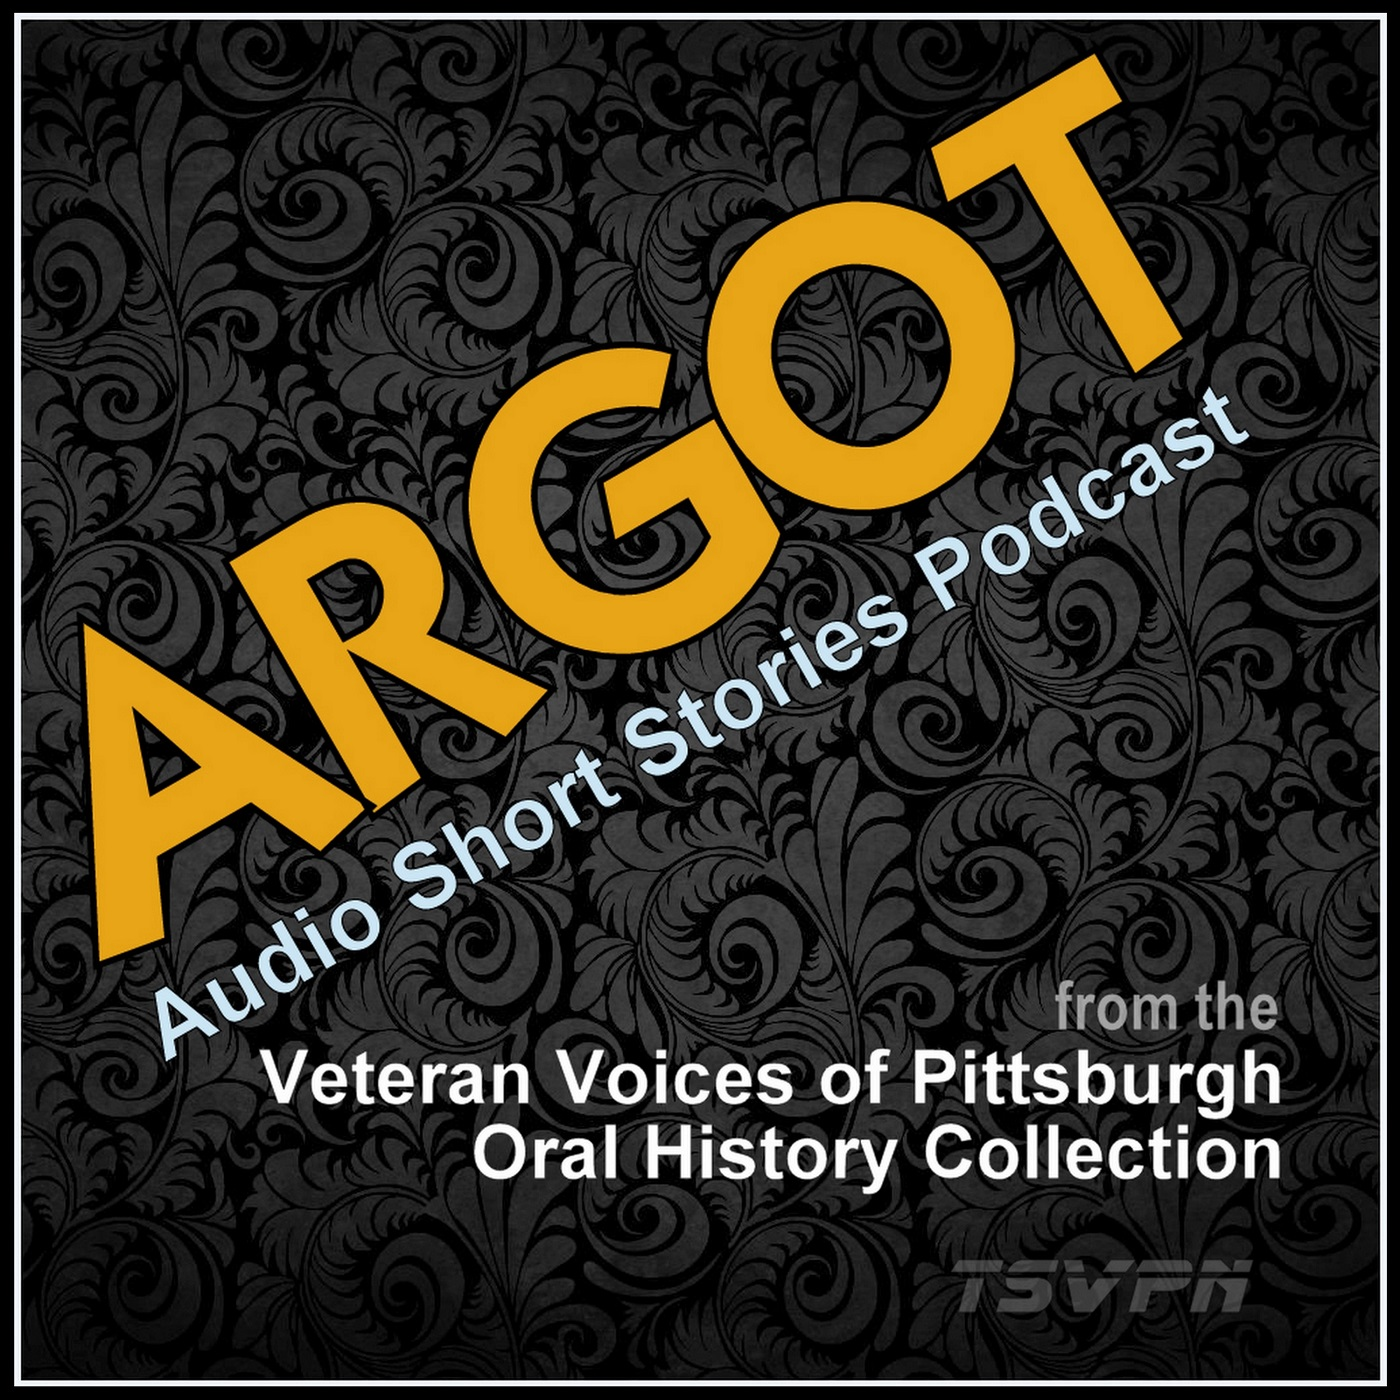 Argot: The Veterans Short Story Collection